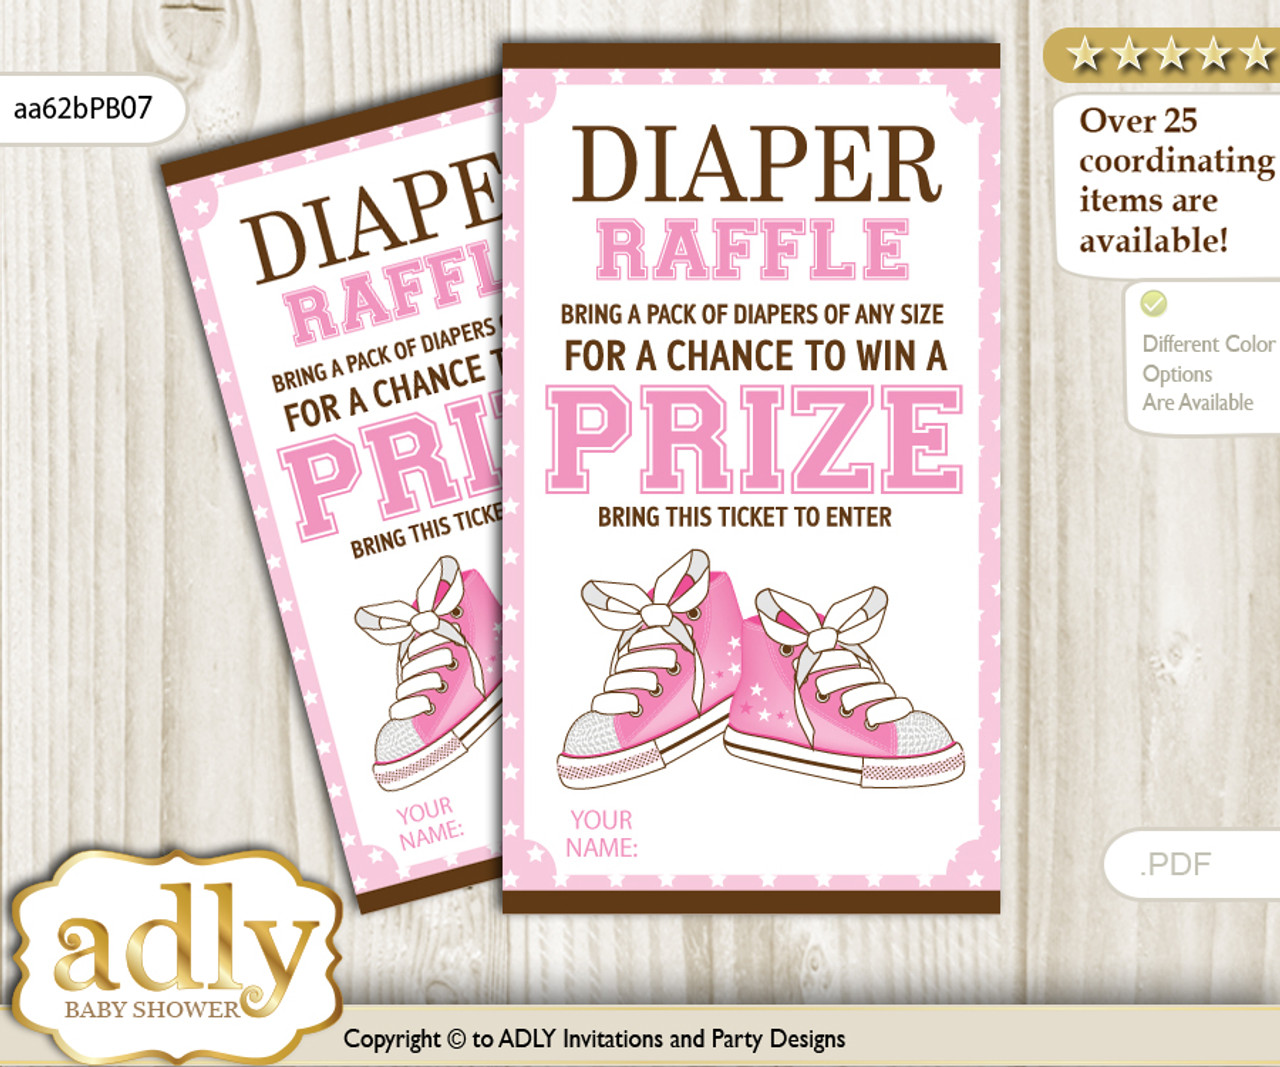 graphic about Diaper Raffle Printable named Lady Shoes Diaper Raffle Printable Tickets for Kid Shower, Purple Brown, STar